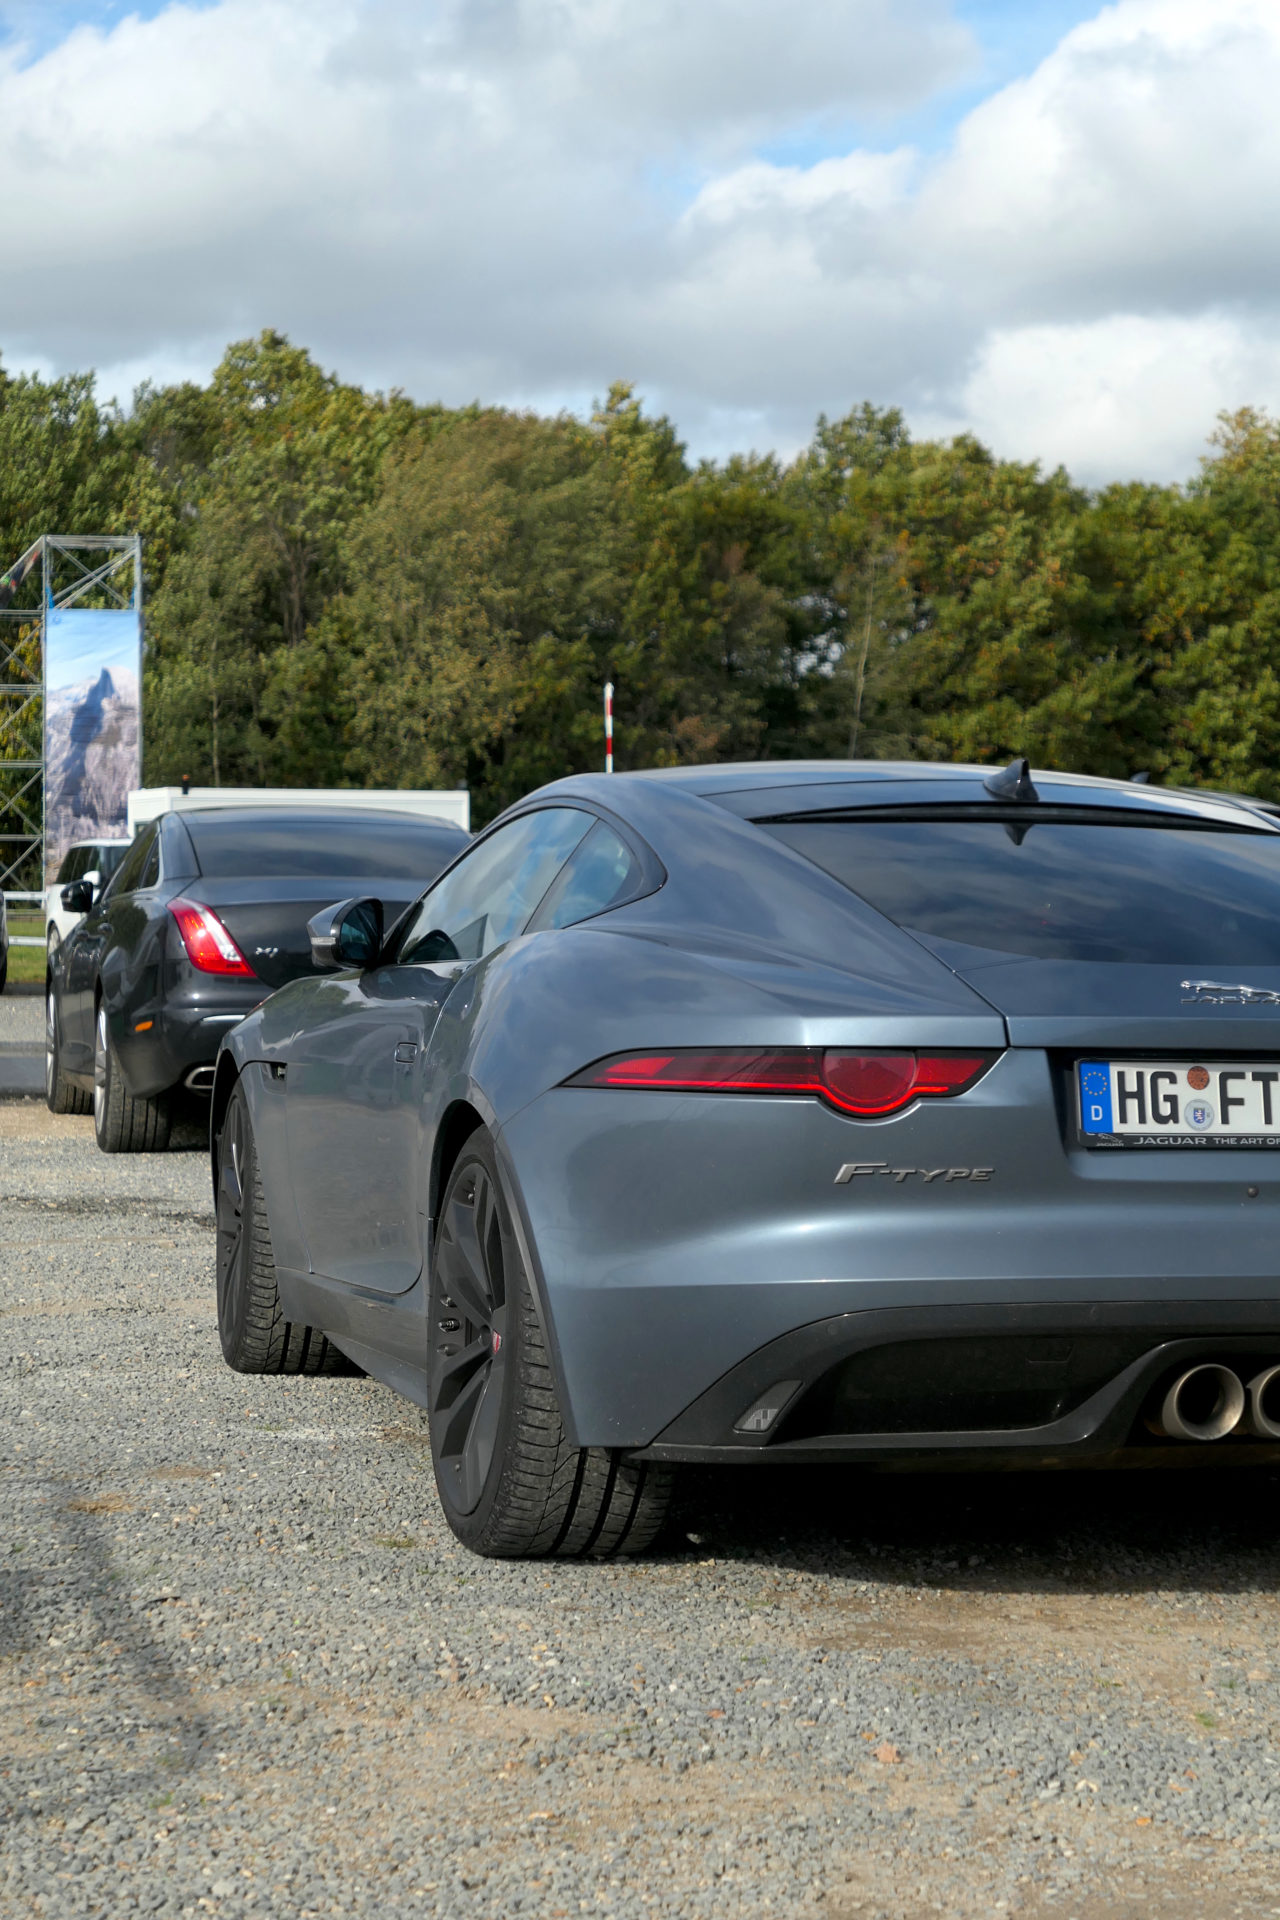 road rug cars roadrugcars jaguar land rover festival jlr festival f type rear